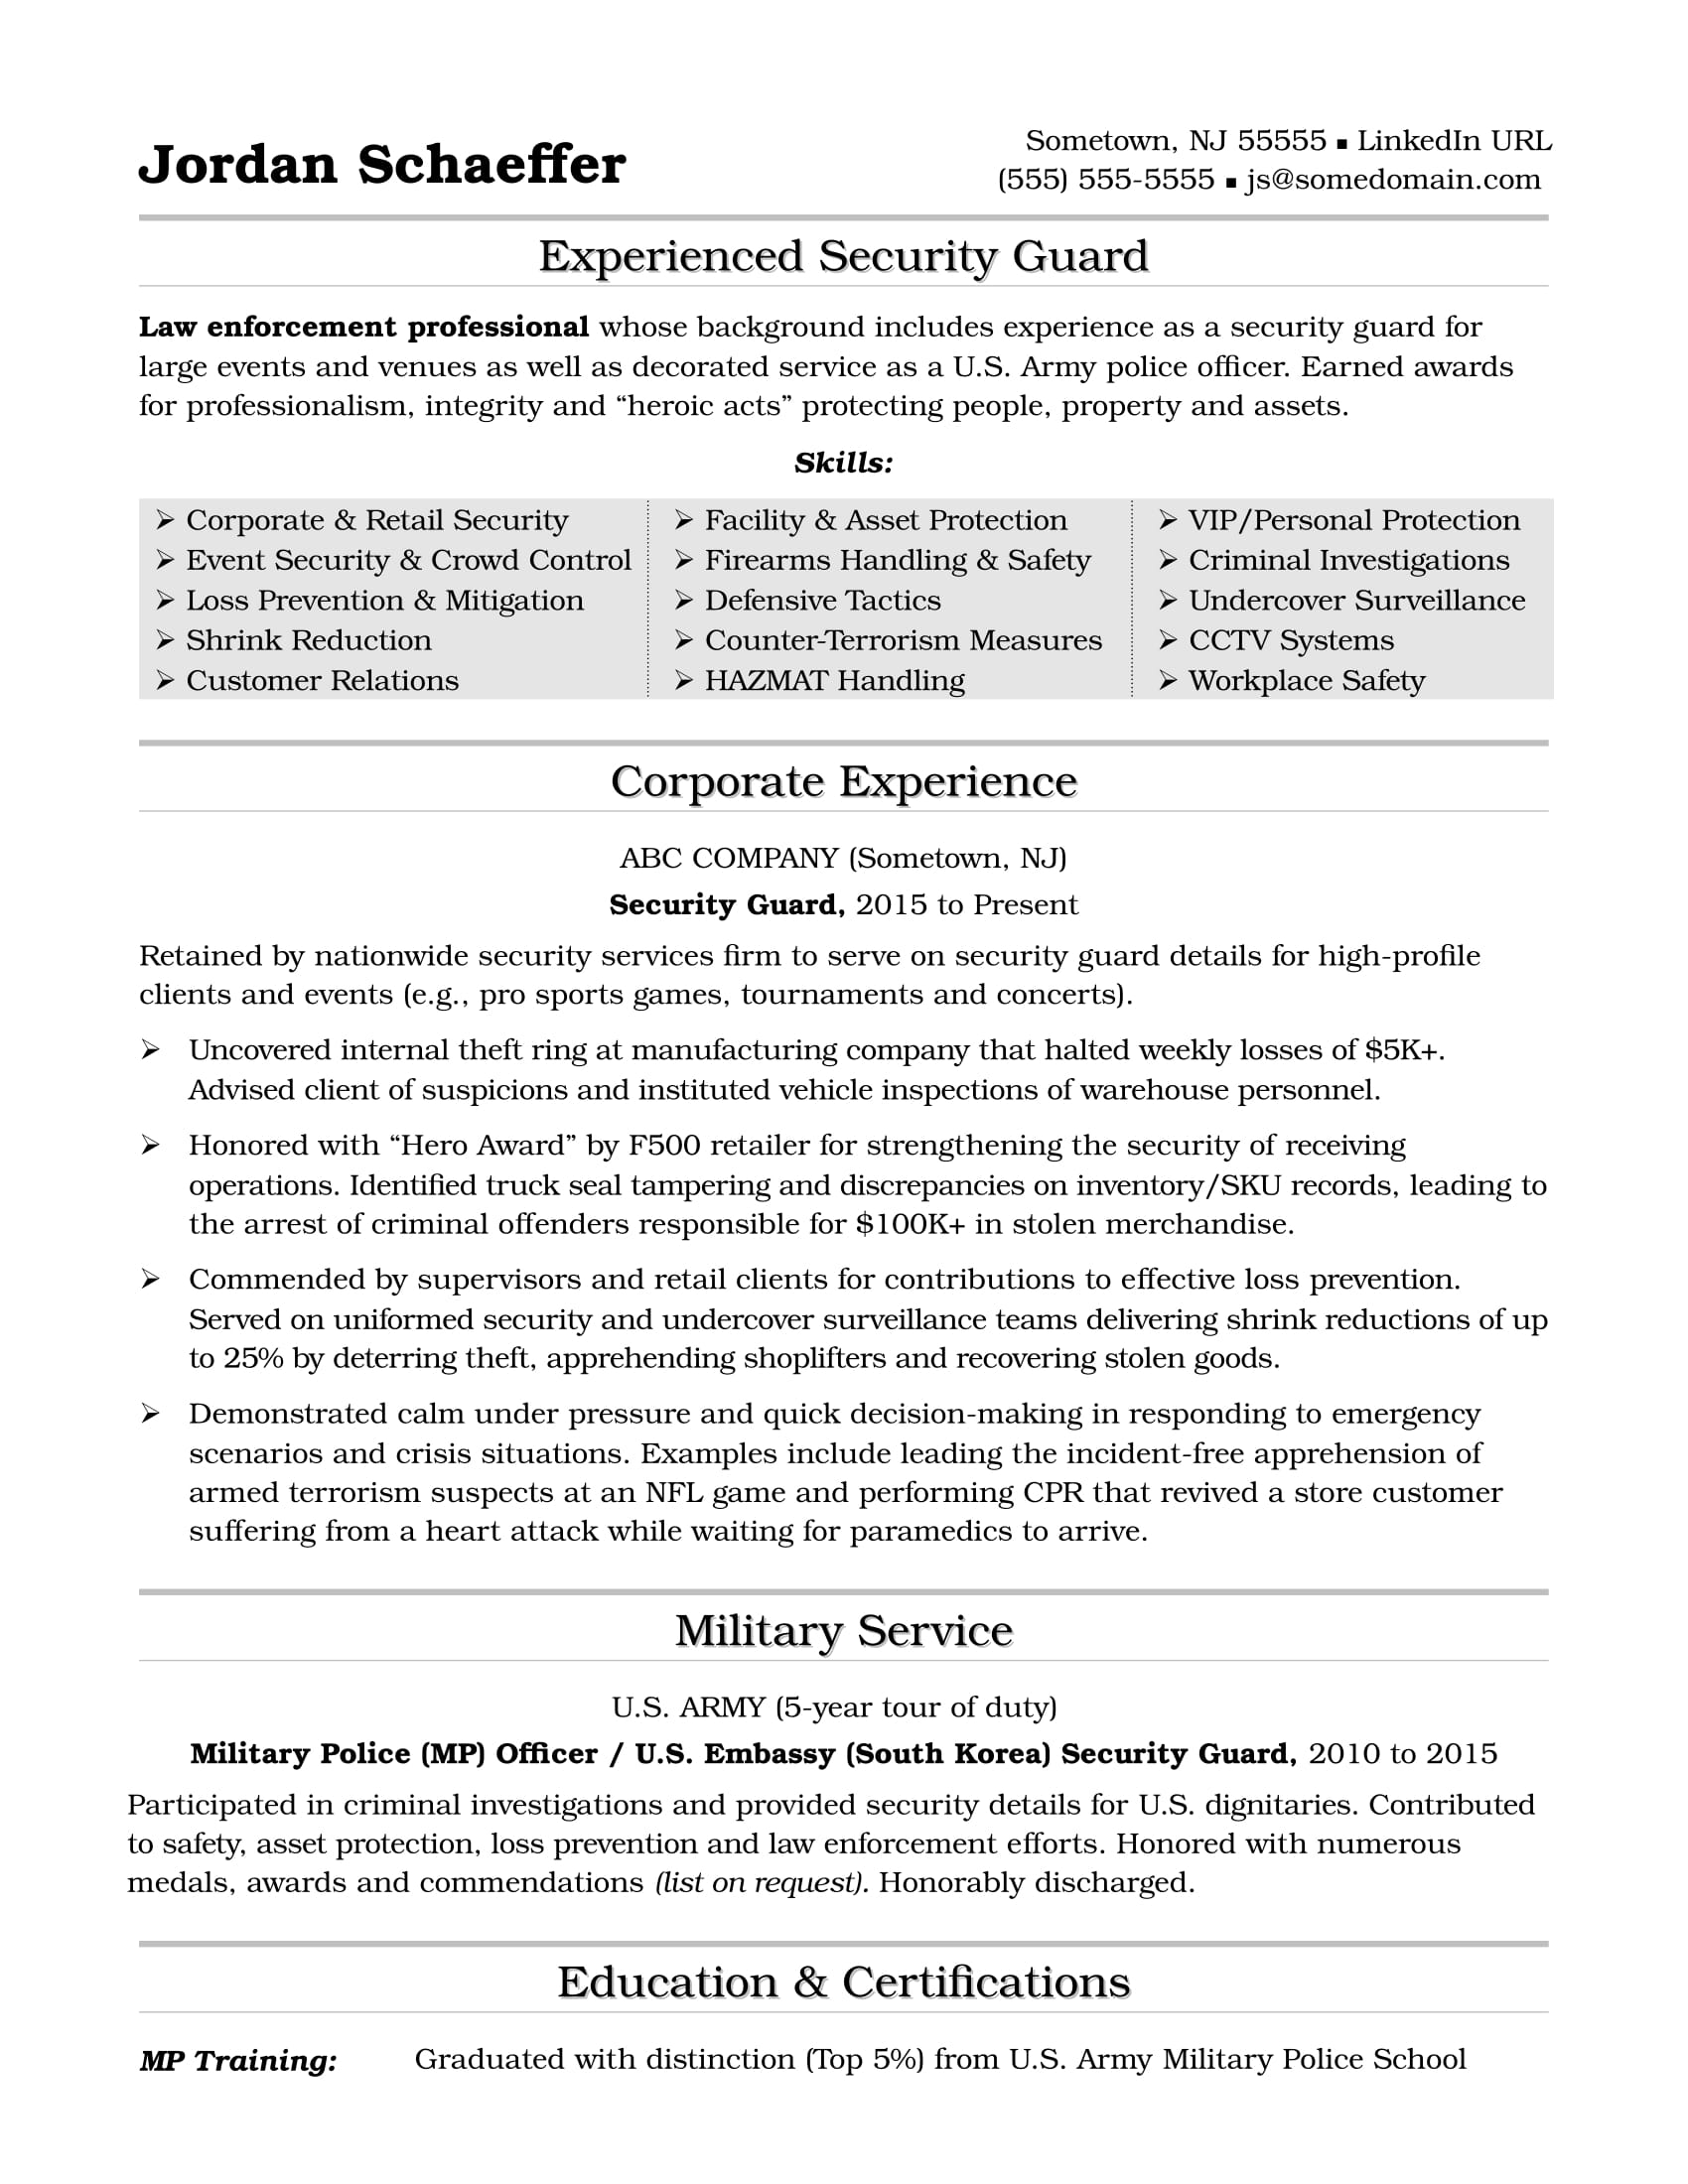 Security Guard Resume Sample  Army Resume